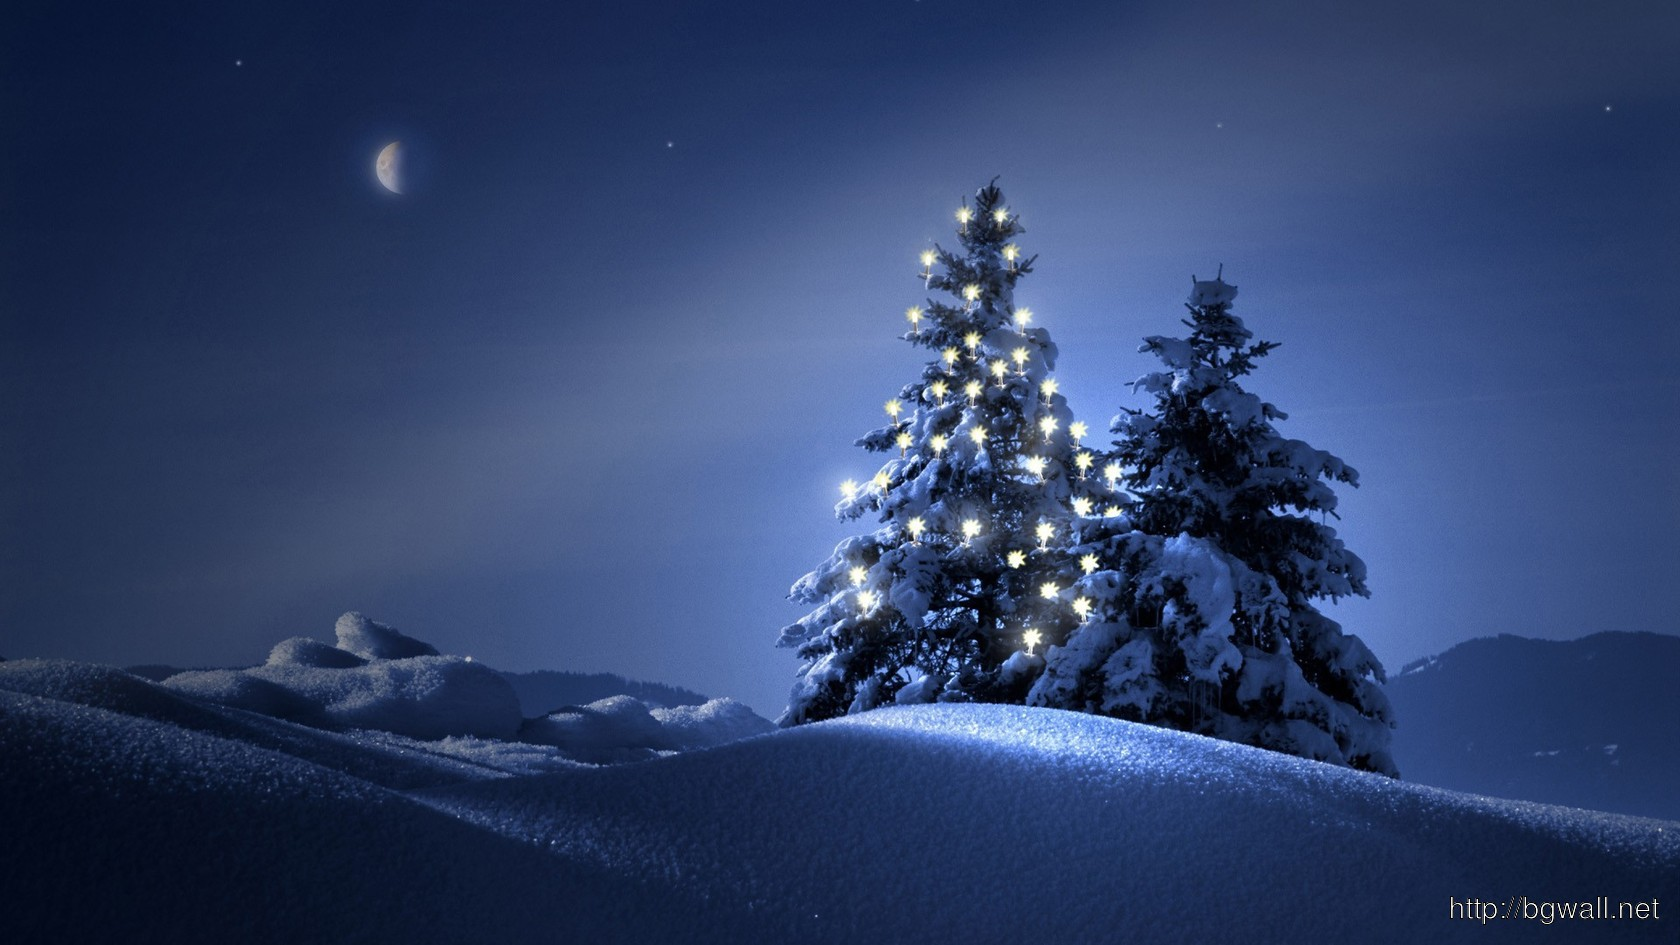 Video Game Car Wallpapers Christmas Trees In The Snow Wallpaper 4058 Background